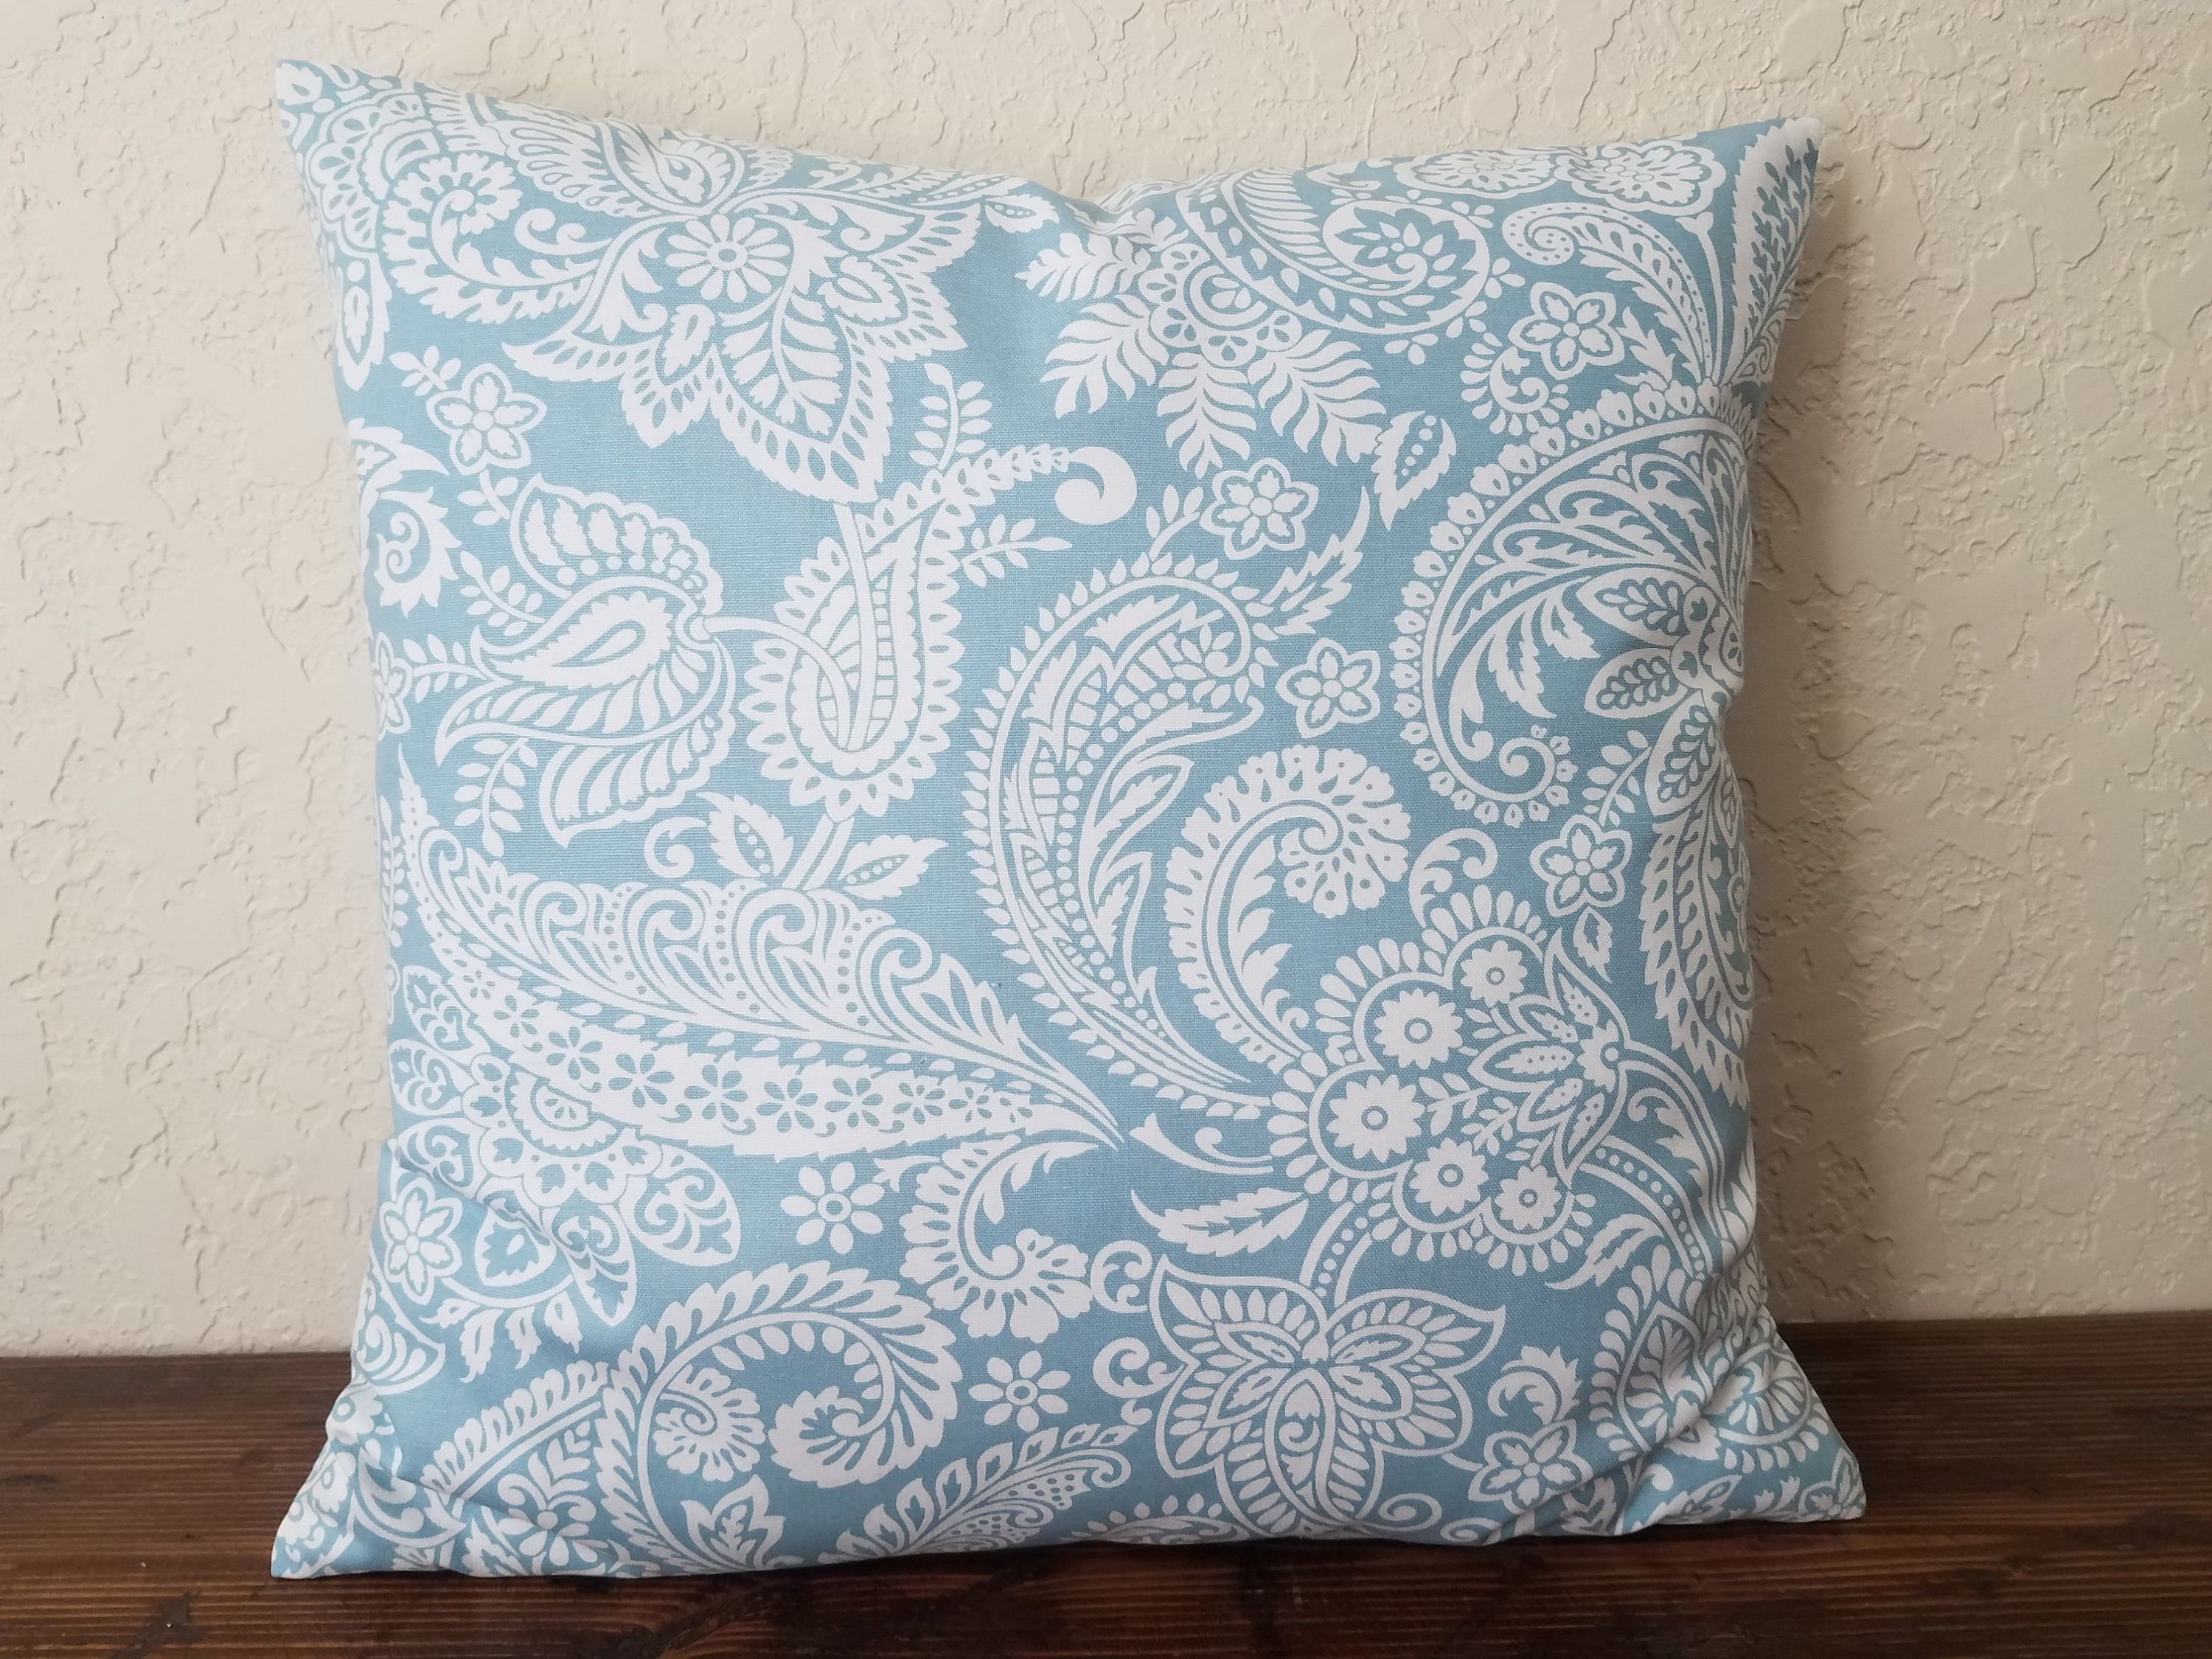 Spa Blue Floral Pillow Covers, Throw